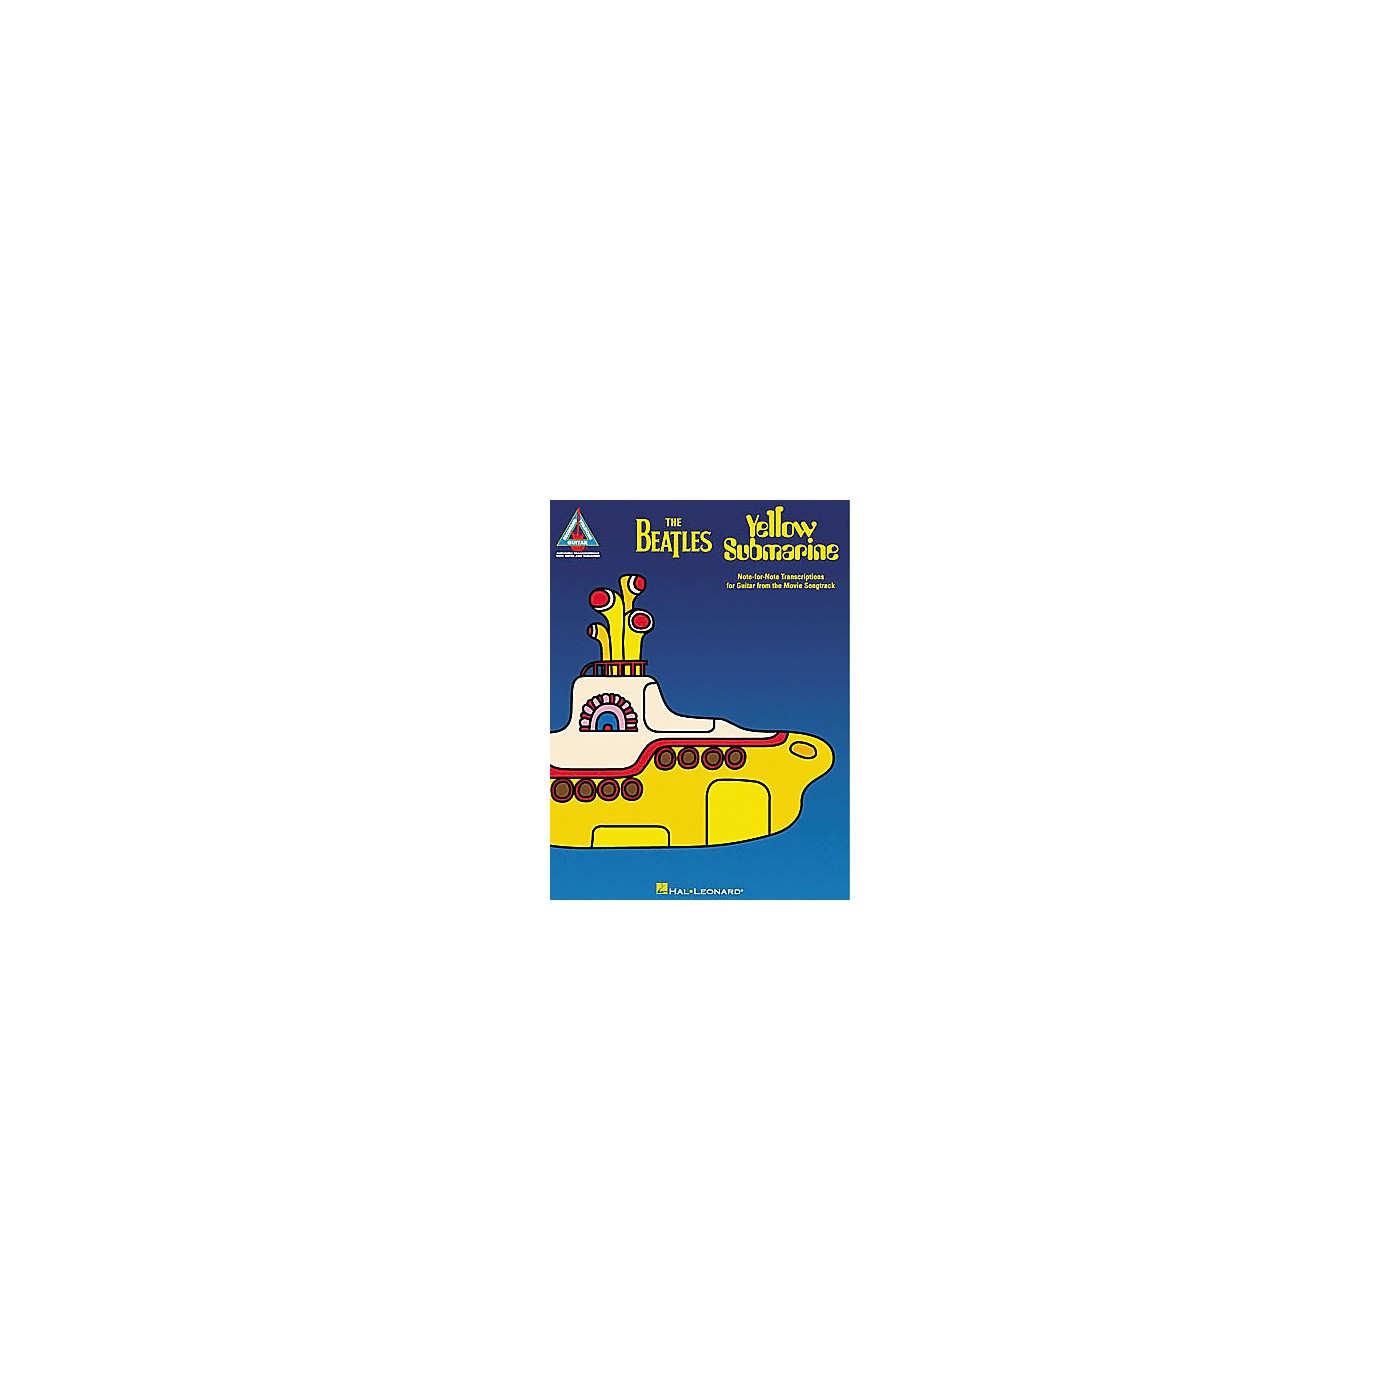 Hal Leonard The Beatles Yellow Submarine Guitar Tab Songbook thumbnail